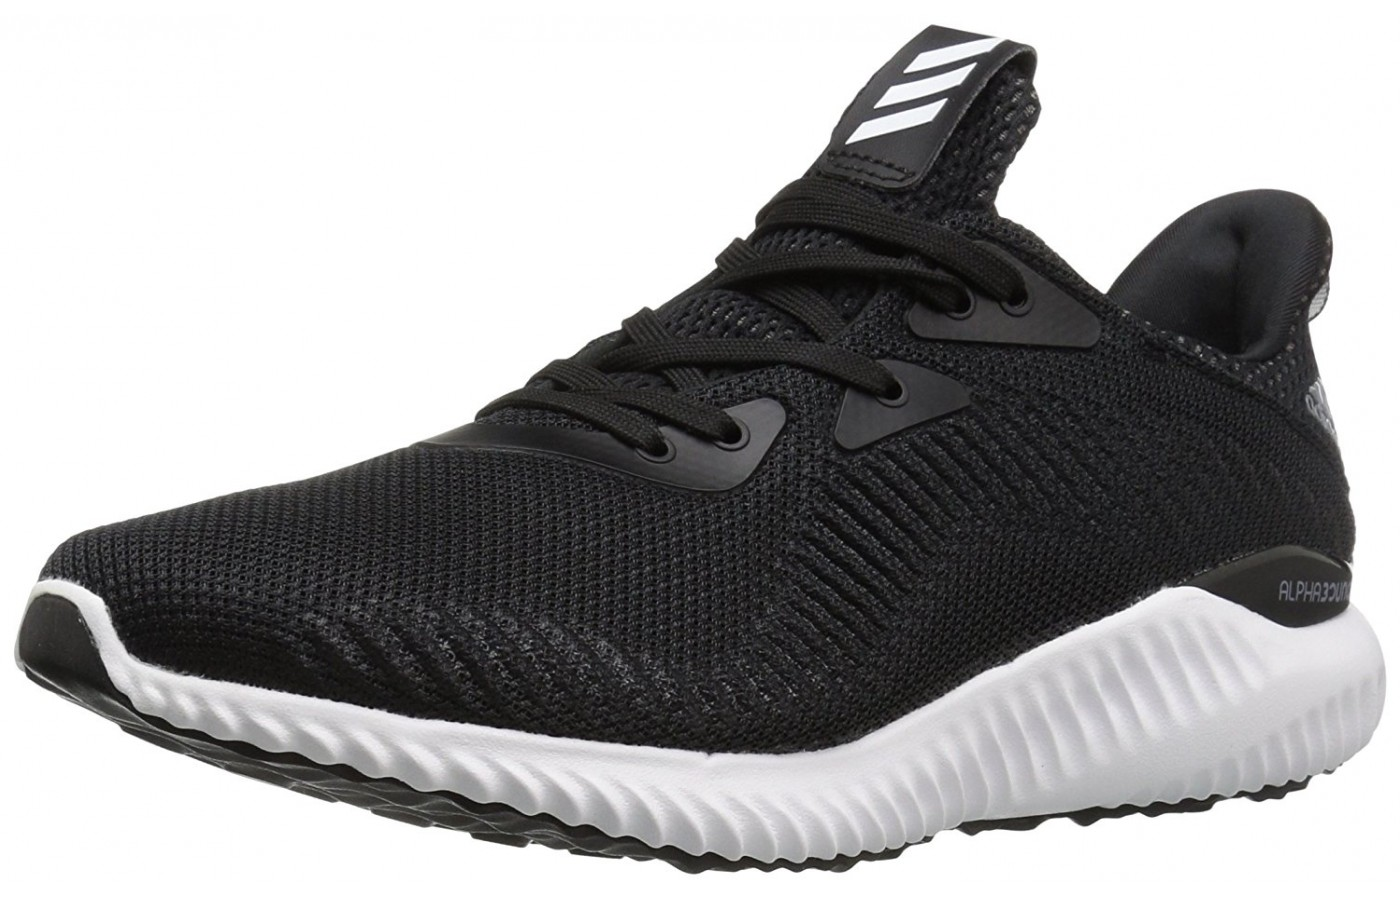 6103ce5b5df6e Adidas AlphaBounce Reviewed   Tested for Performance - WalkJogRun